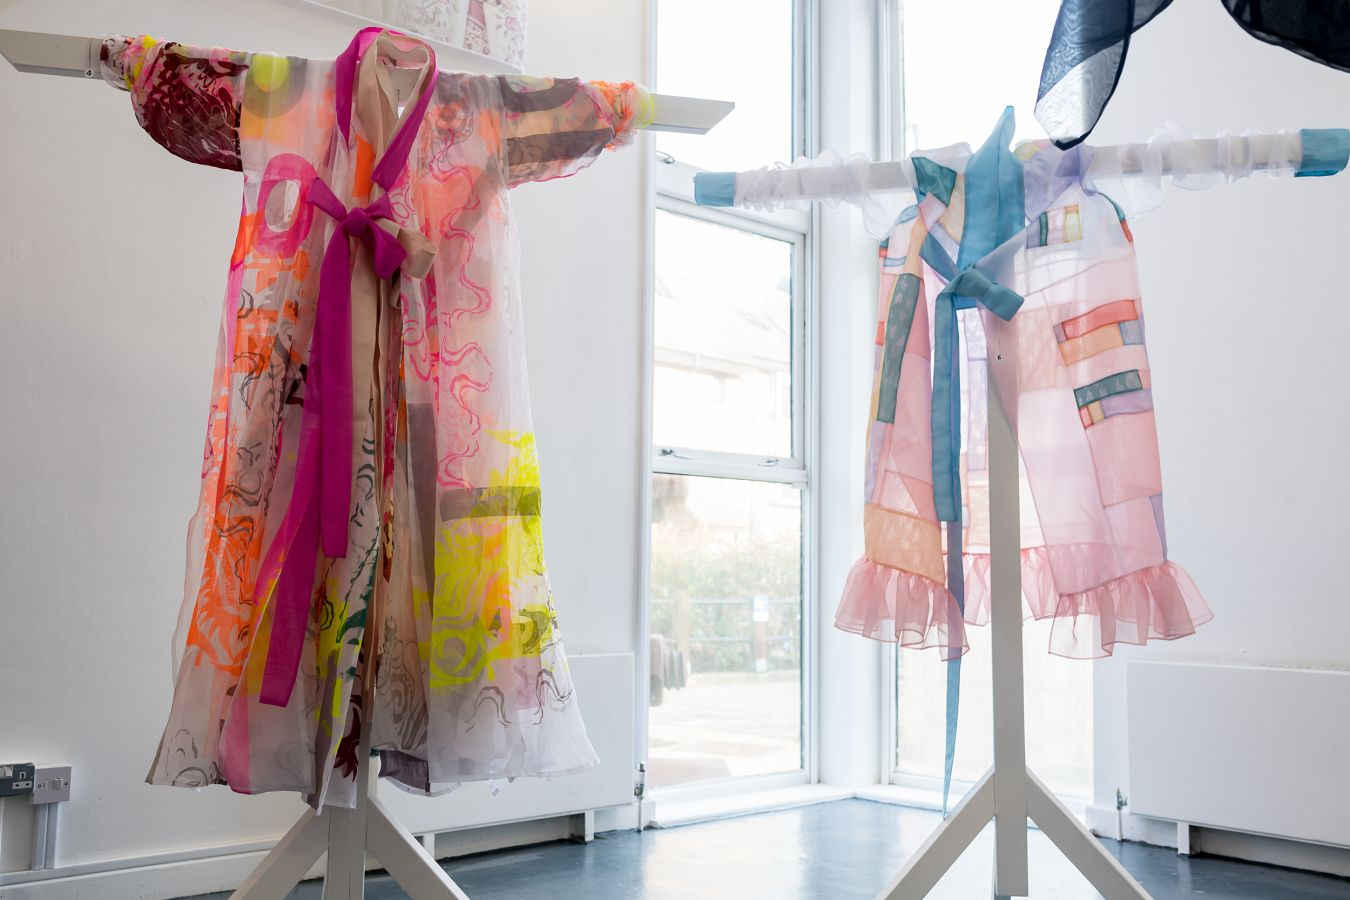 The Hanbok interpretations created by students from Kingston School of Art were displayed at the University\'s Stanley Picker Gallery.